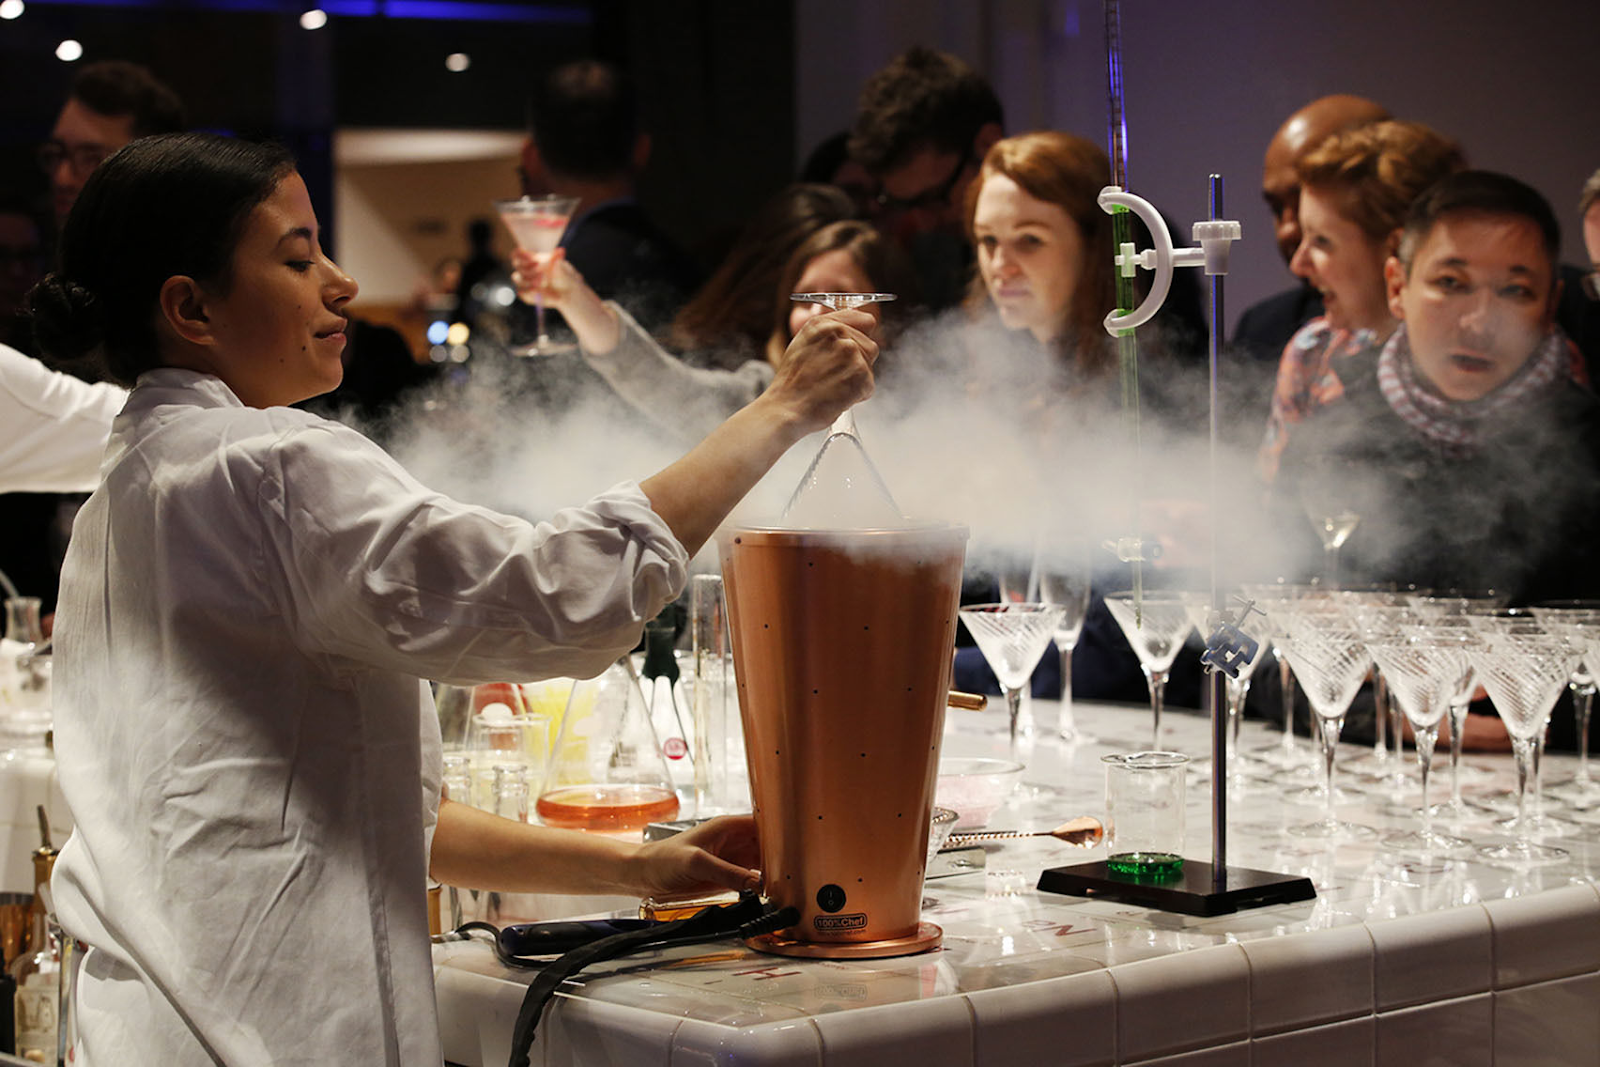 a women dressed in a lab coat is standing infront of a table with smoking flasks - there are people looking at her in amazement